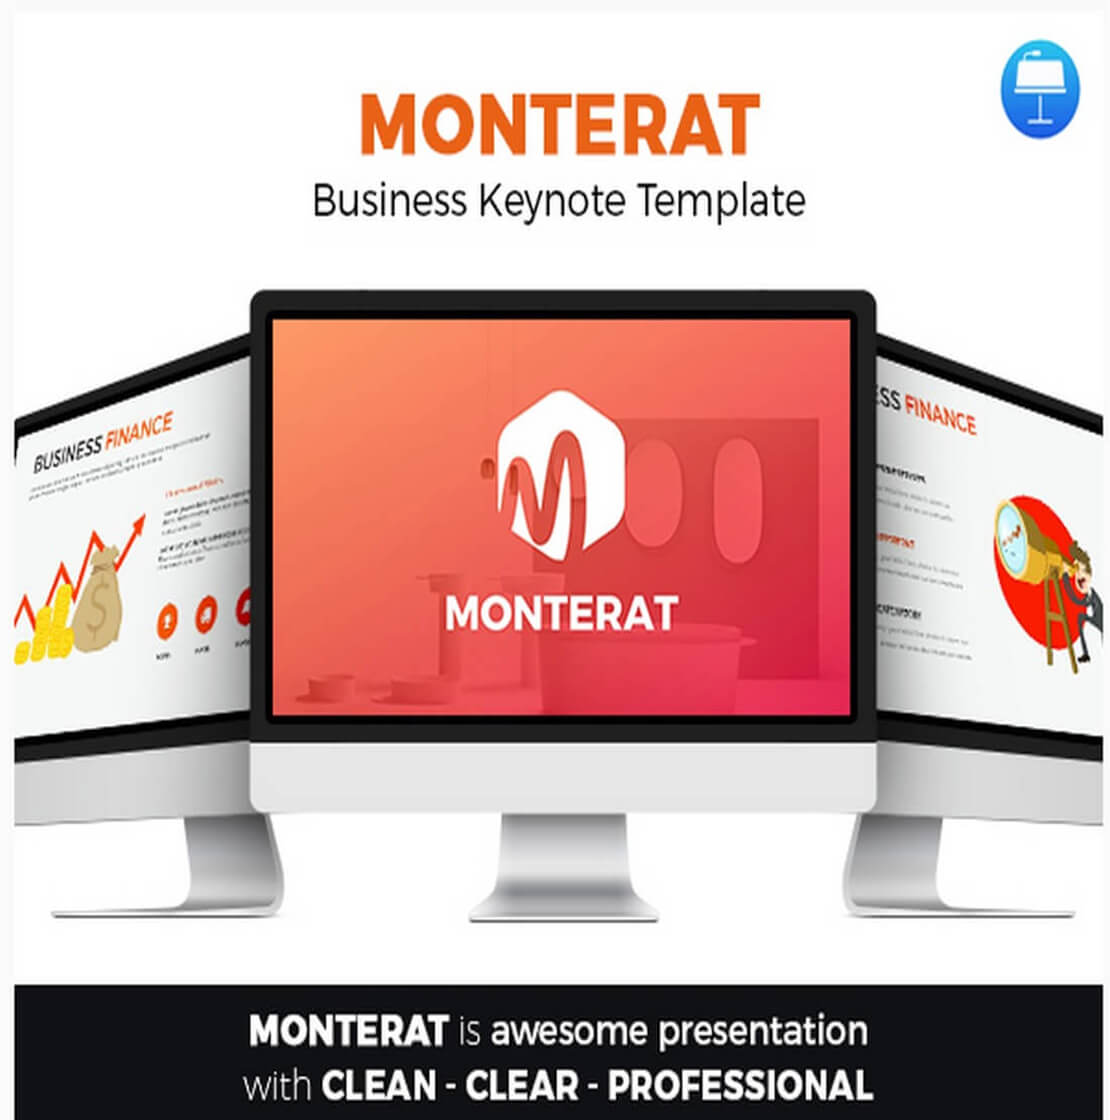 monterat Best Keynote Template For